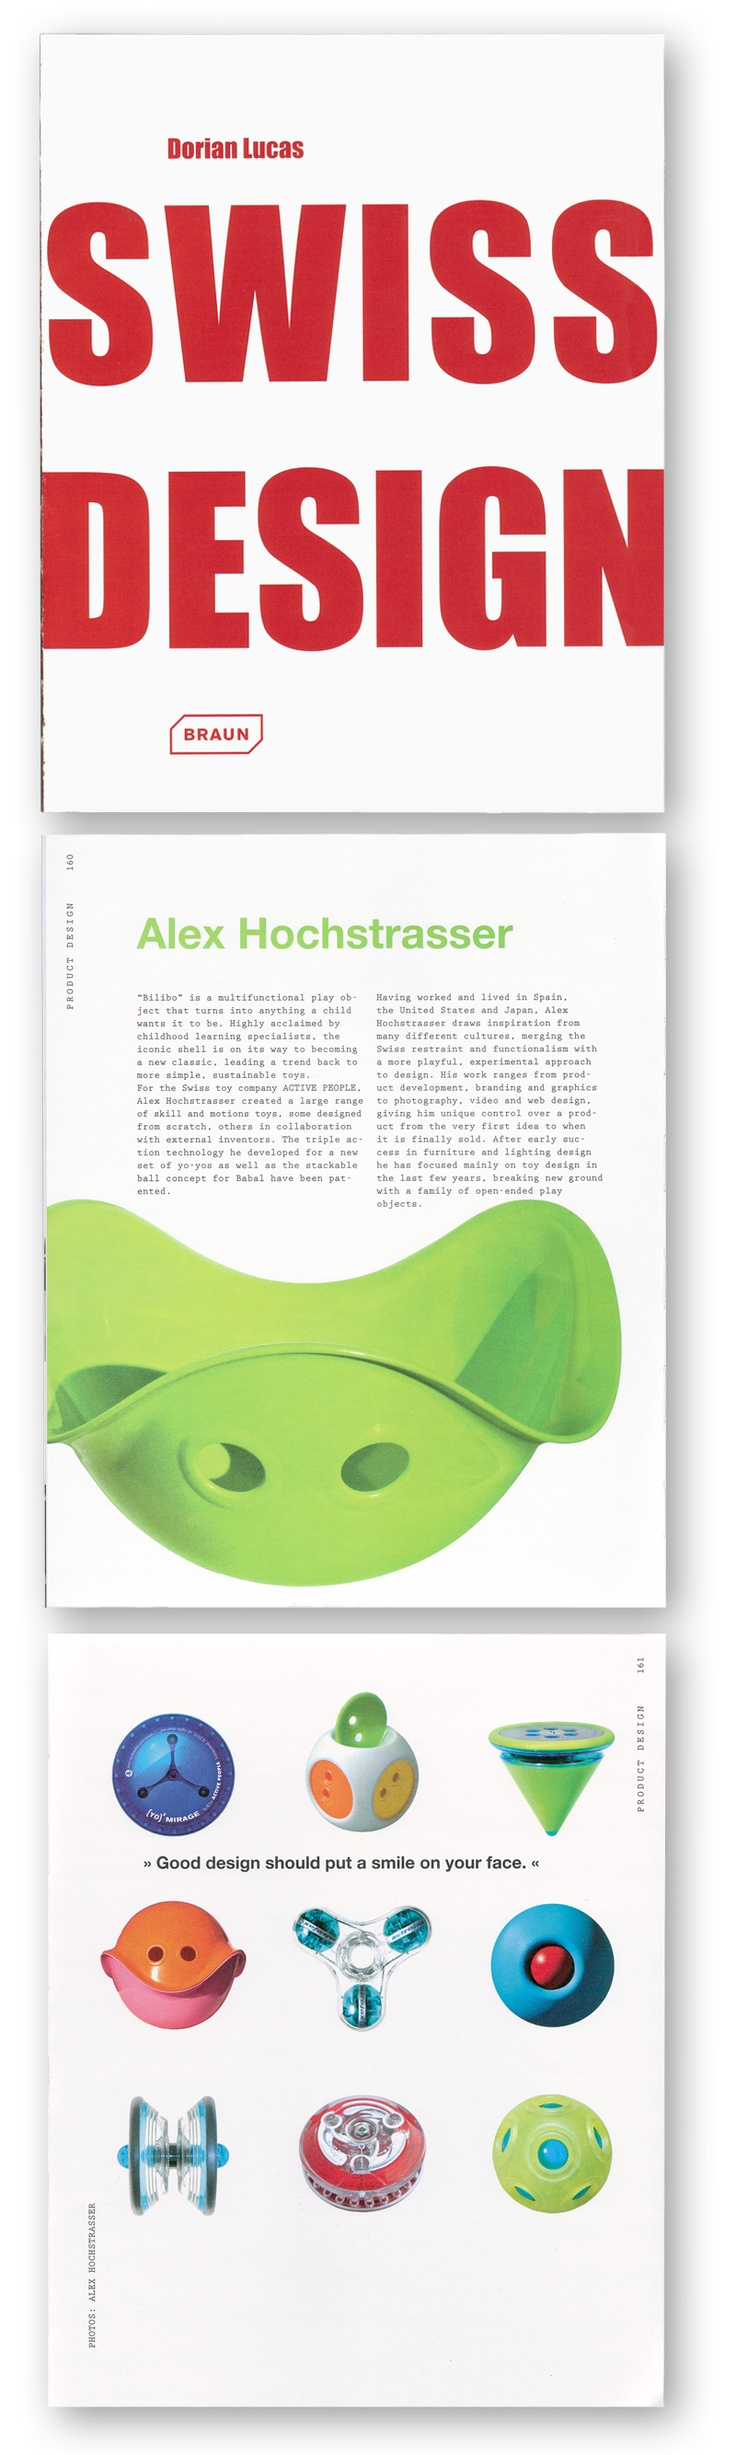 Cool book about Swiss Design featuring Bilibo and other toys by Alex Hochstrasser. #bilibo #swiss #design #alex_hochstrasser